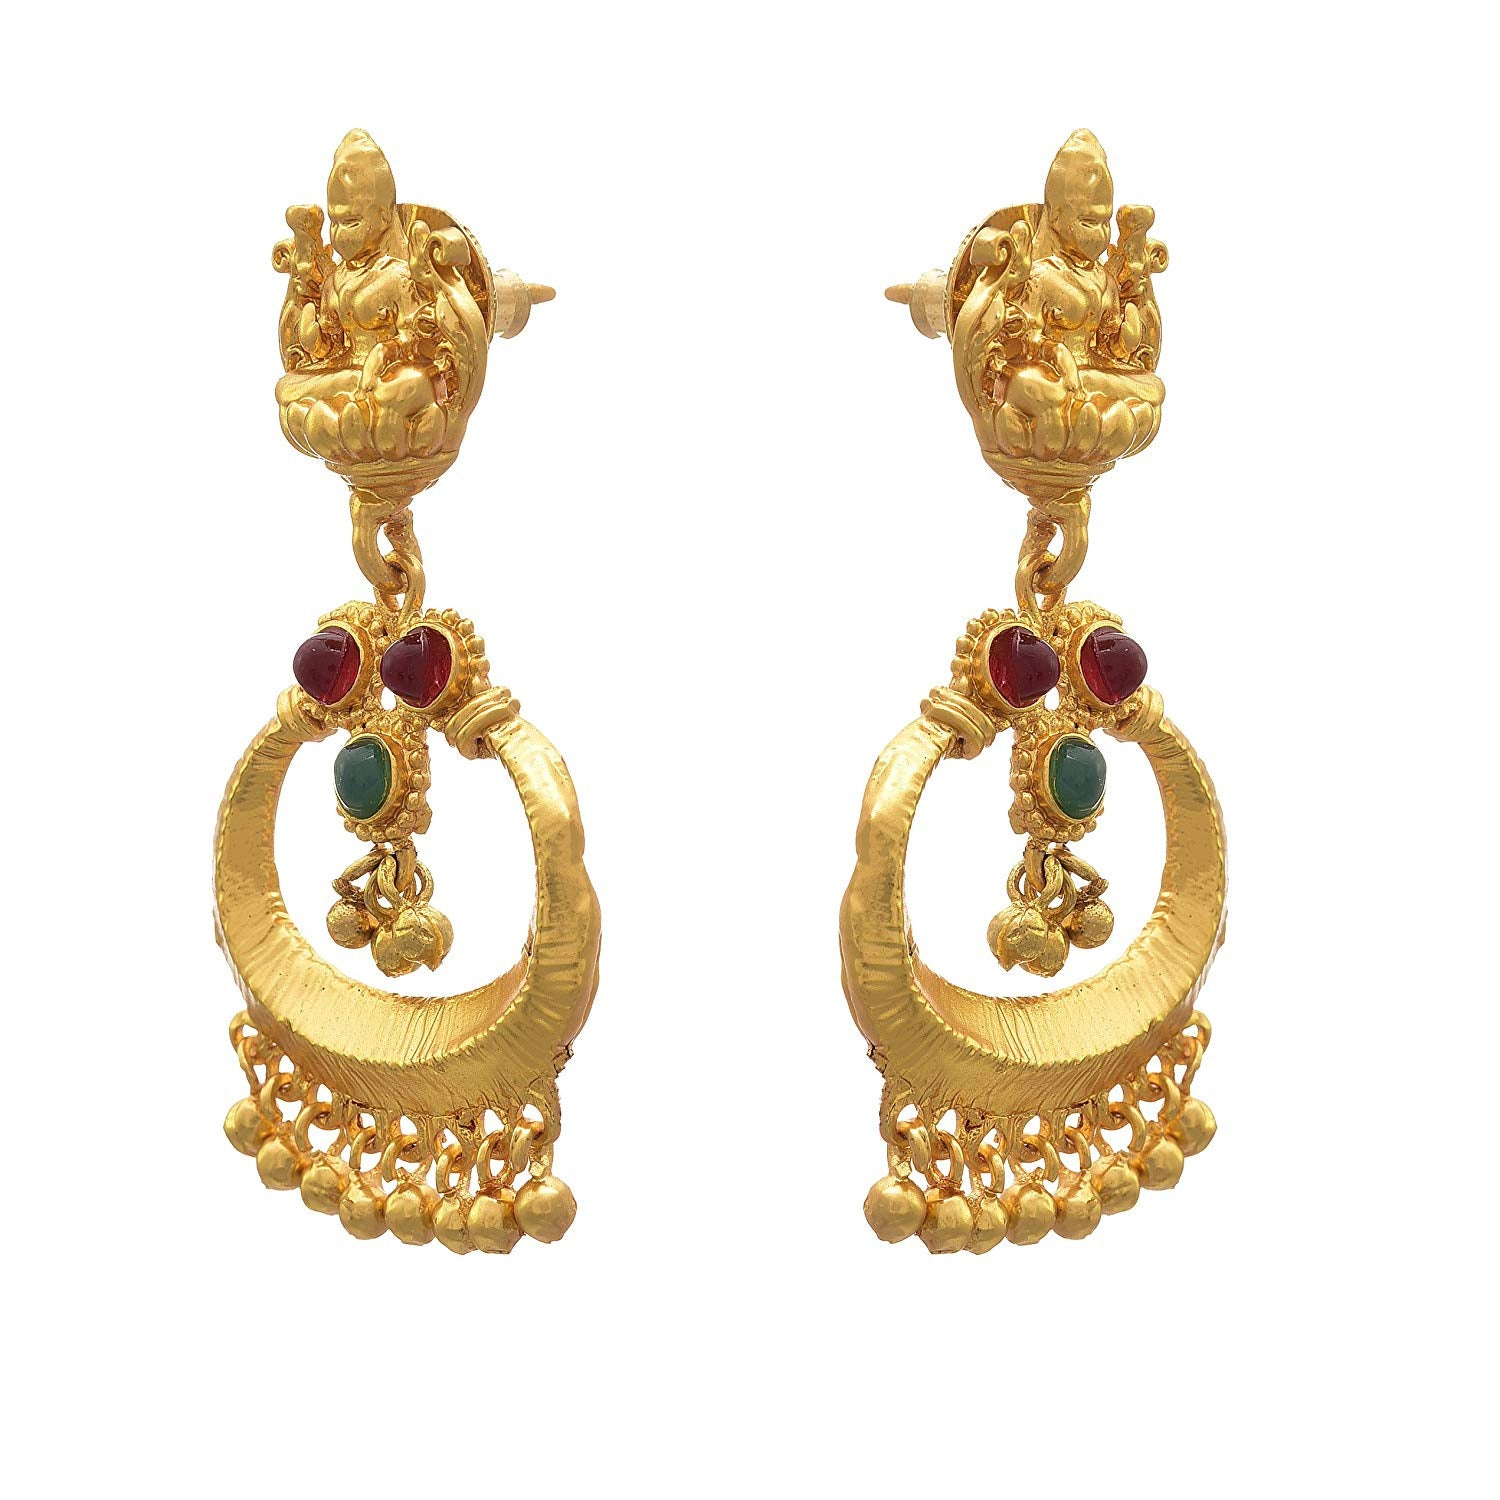 JFL -Traditional Ethnic One Gram Matt Gold Plated Temple Mahalaxmi Earrings for Women and Girls.